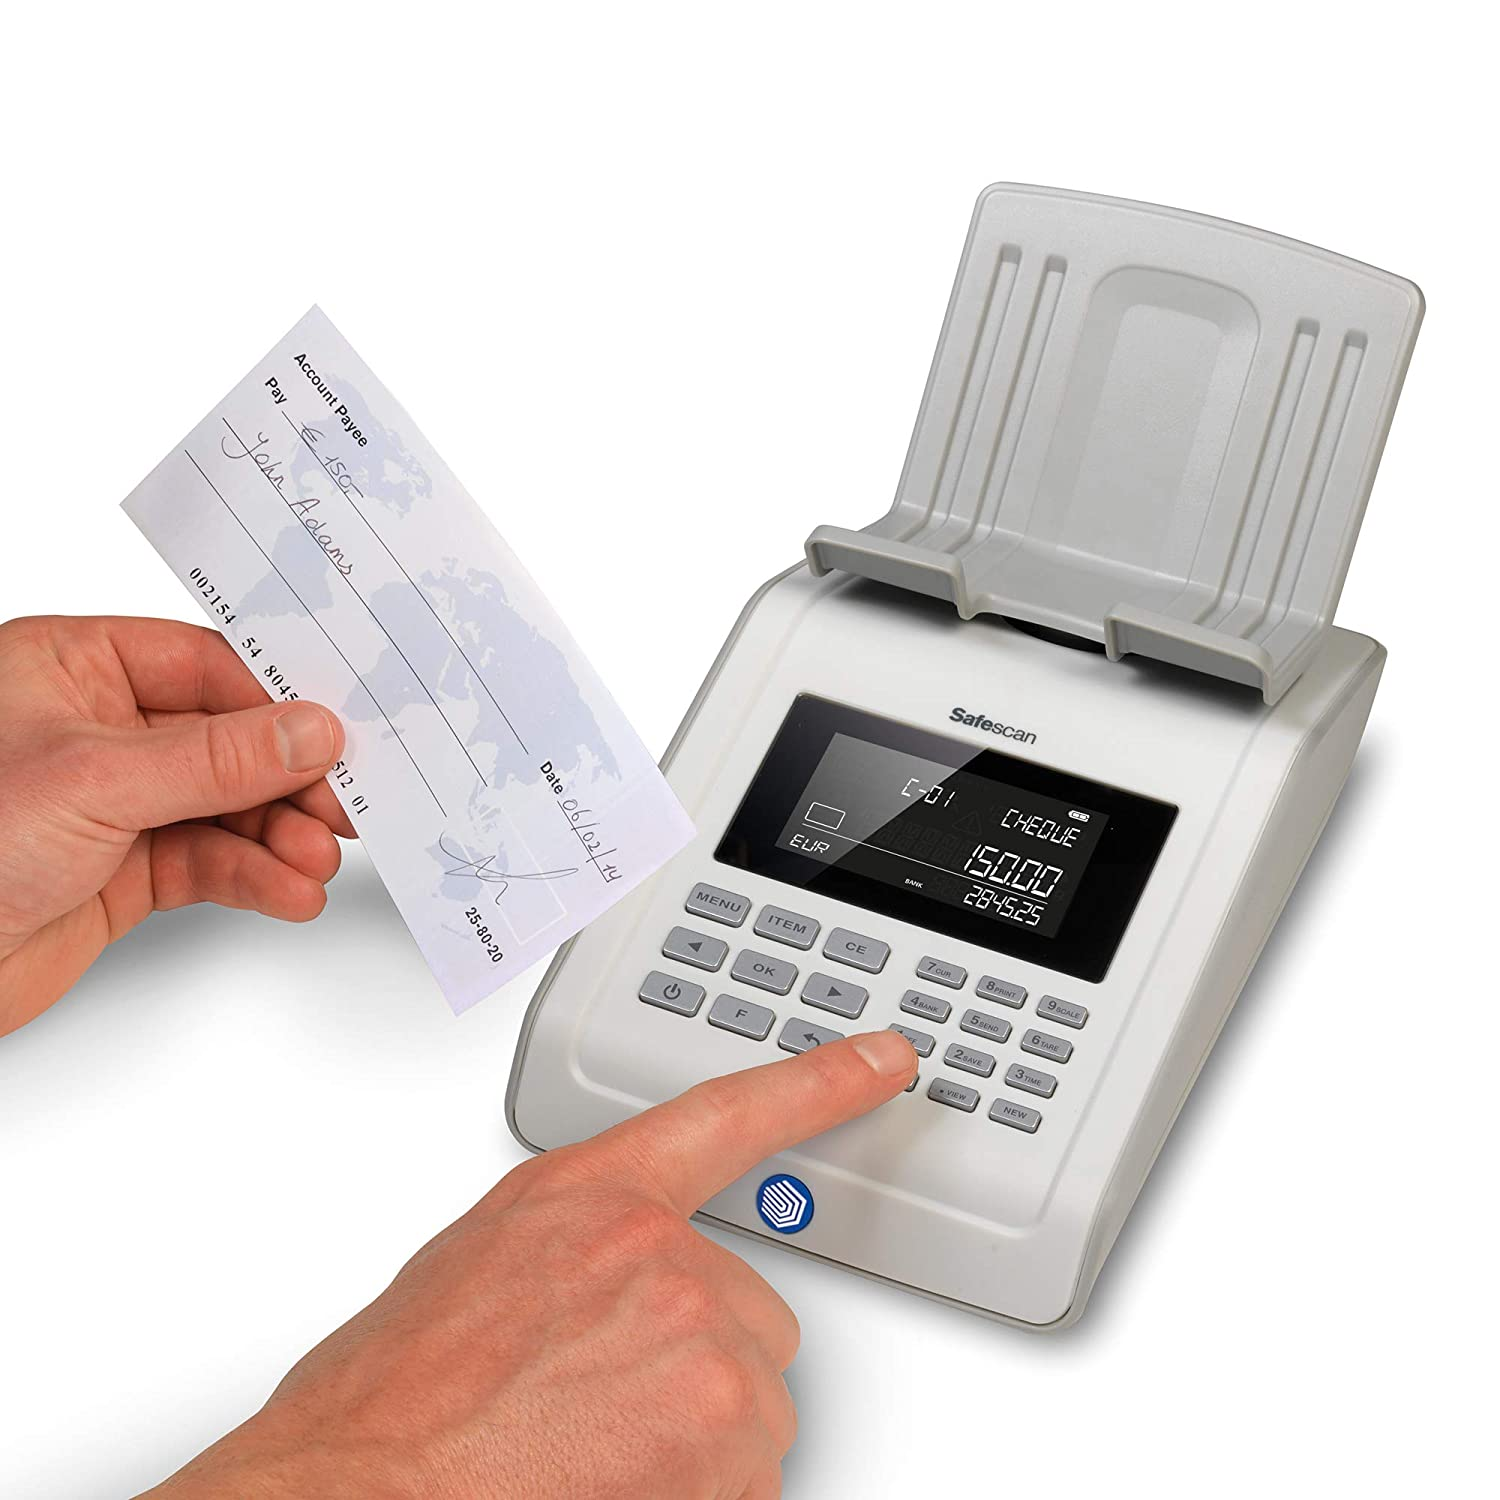 Advanced money counting scale for counting banknotes and coins Safescan 6185 Grey